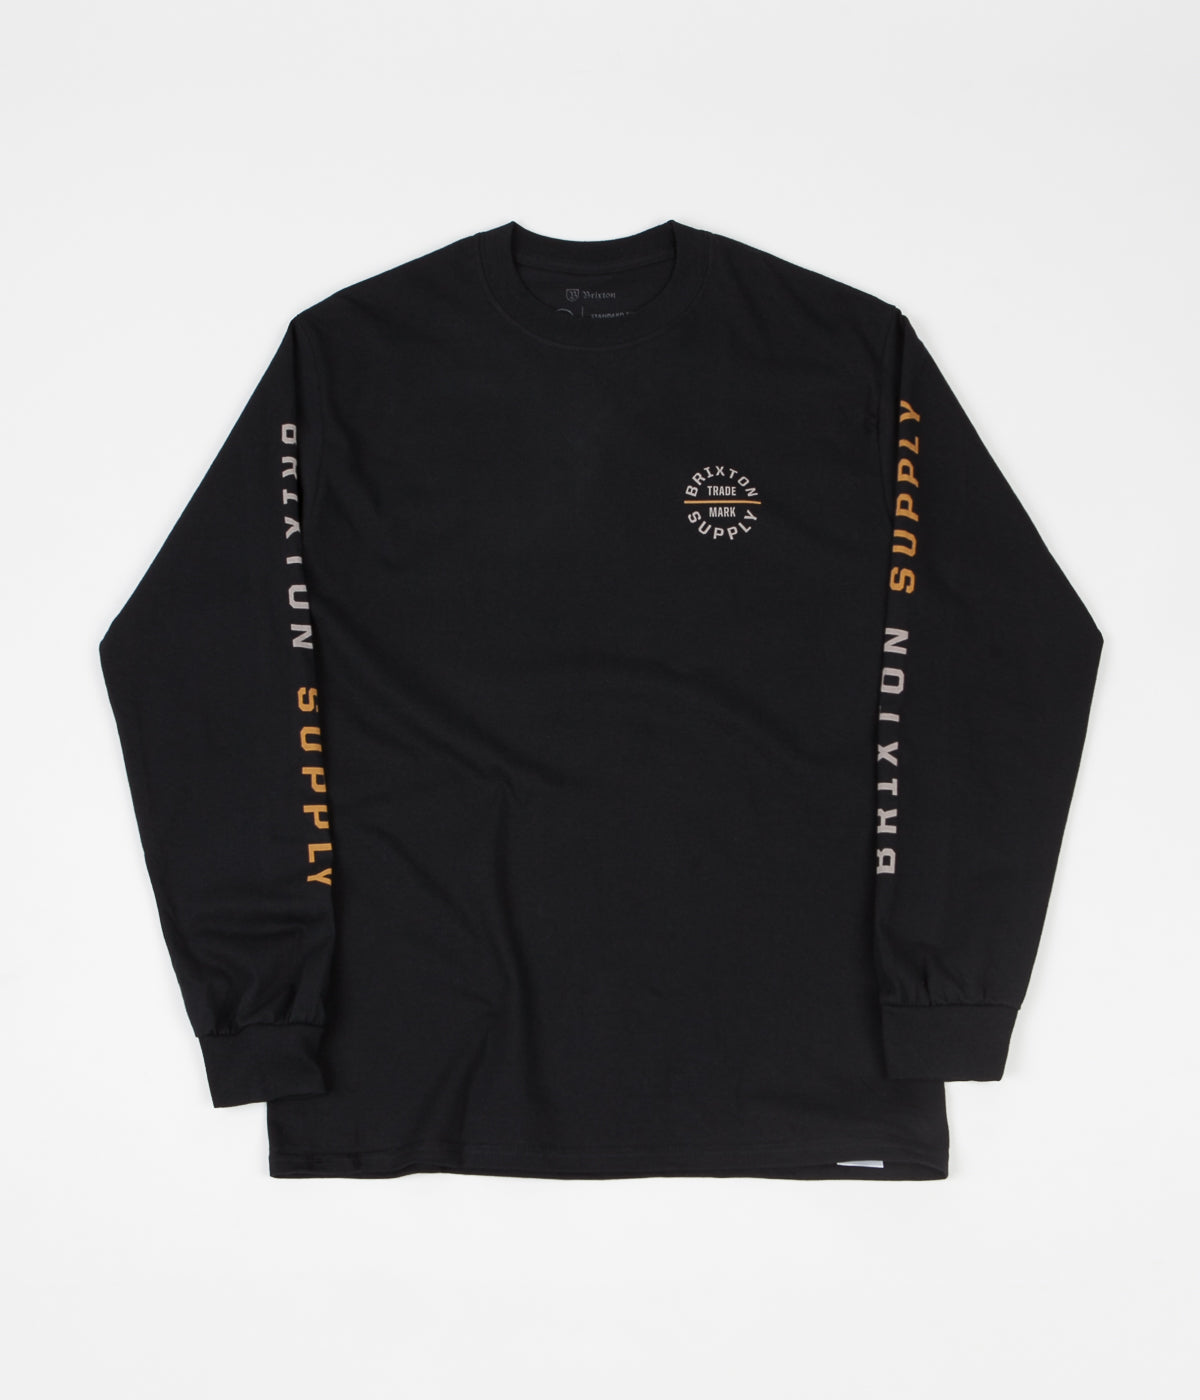 Brixton Oath VI Long Sleeve T-Shirt - Black